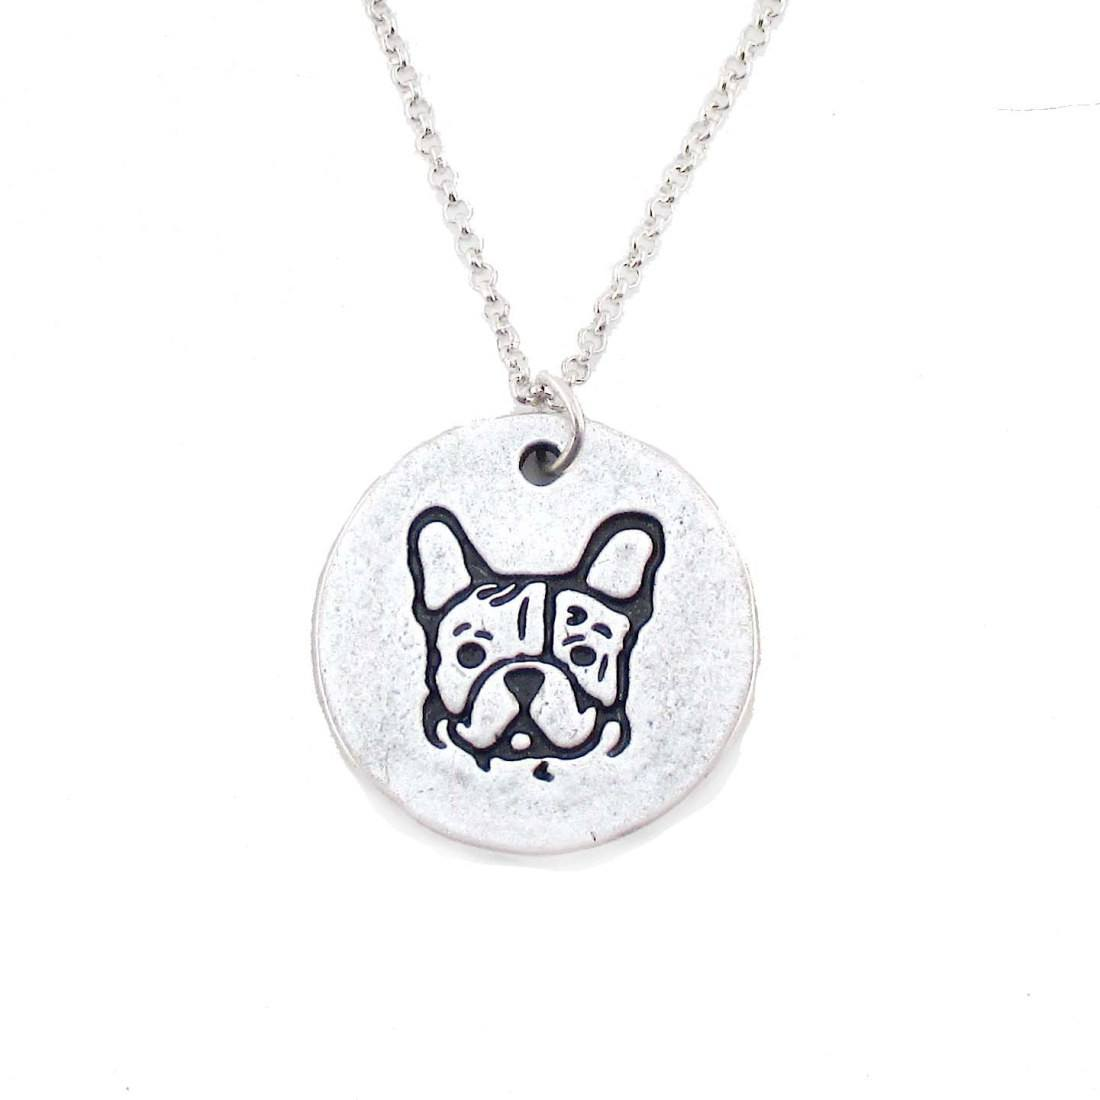 Hand Stamped French Bulldog Coin Pendant Necklace in Silver | DOTOLY